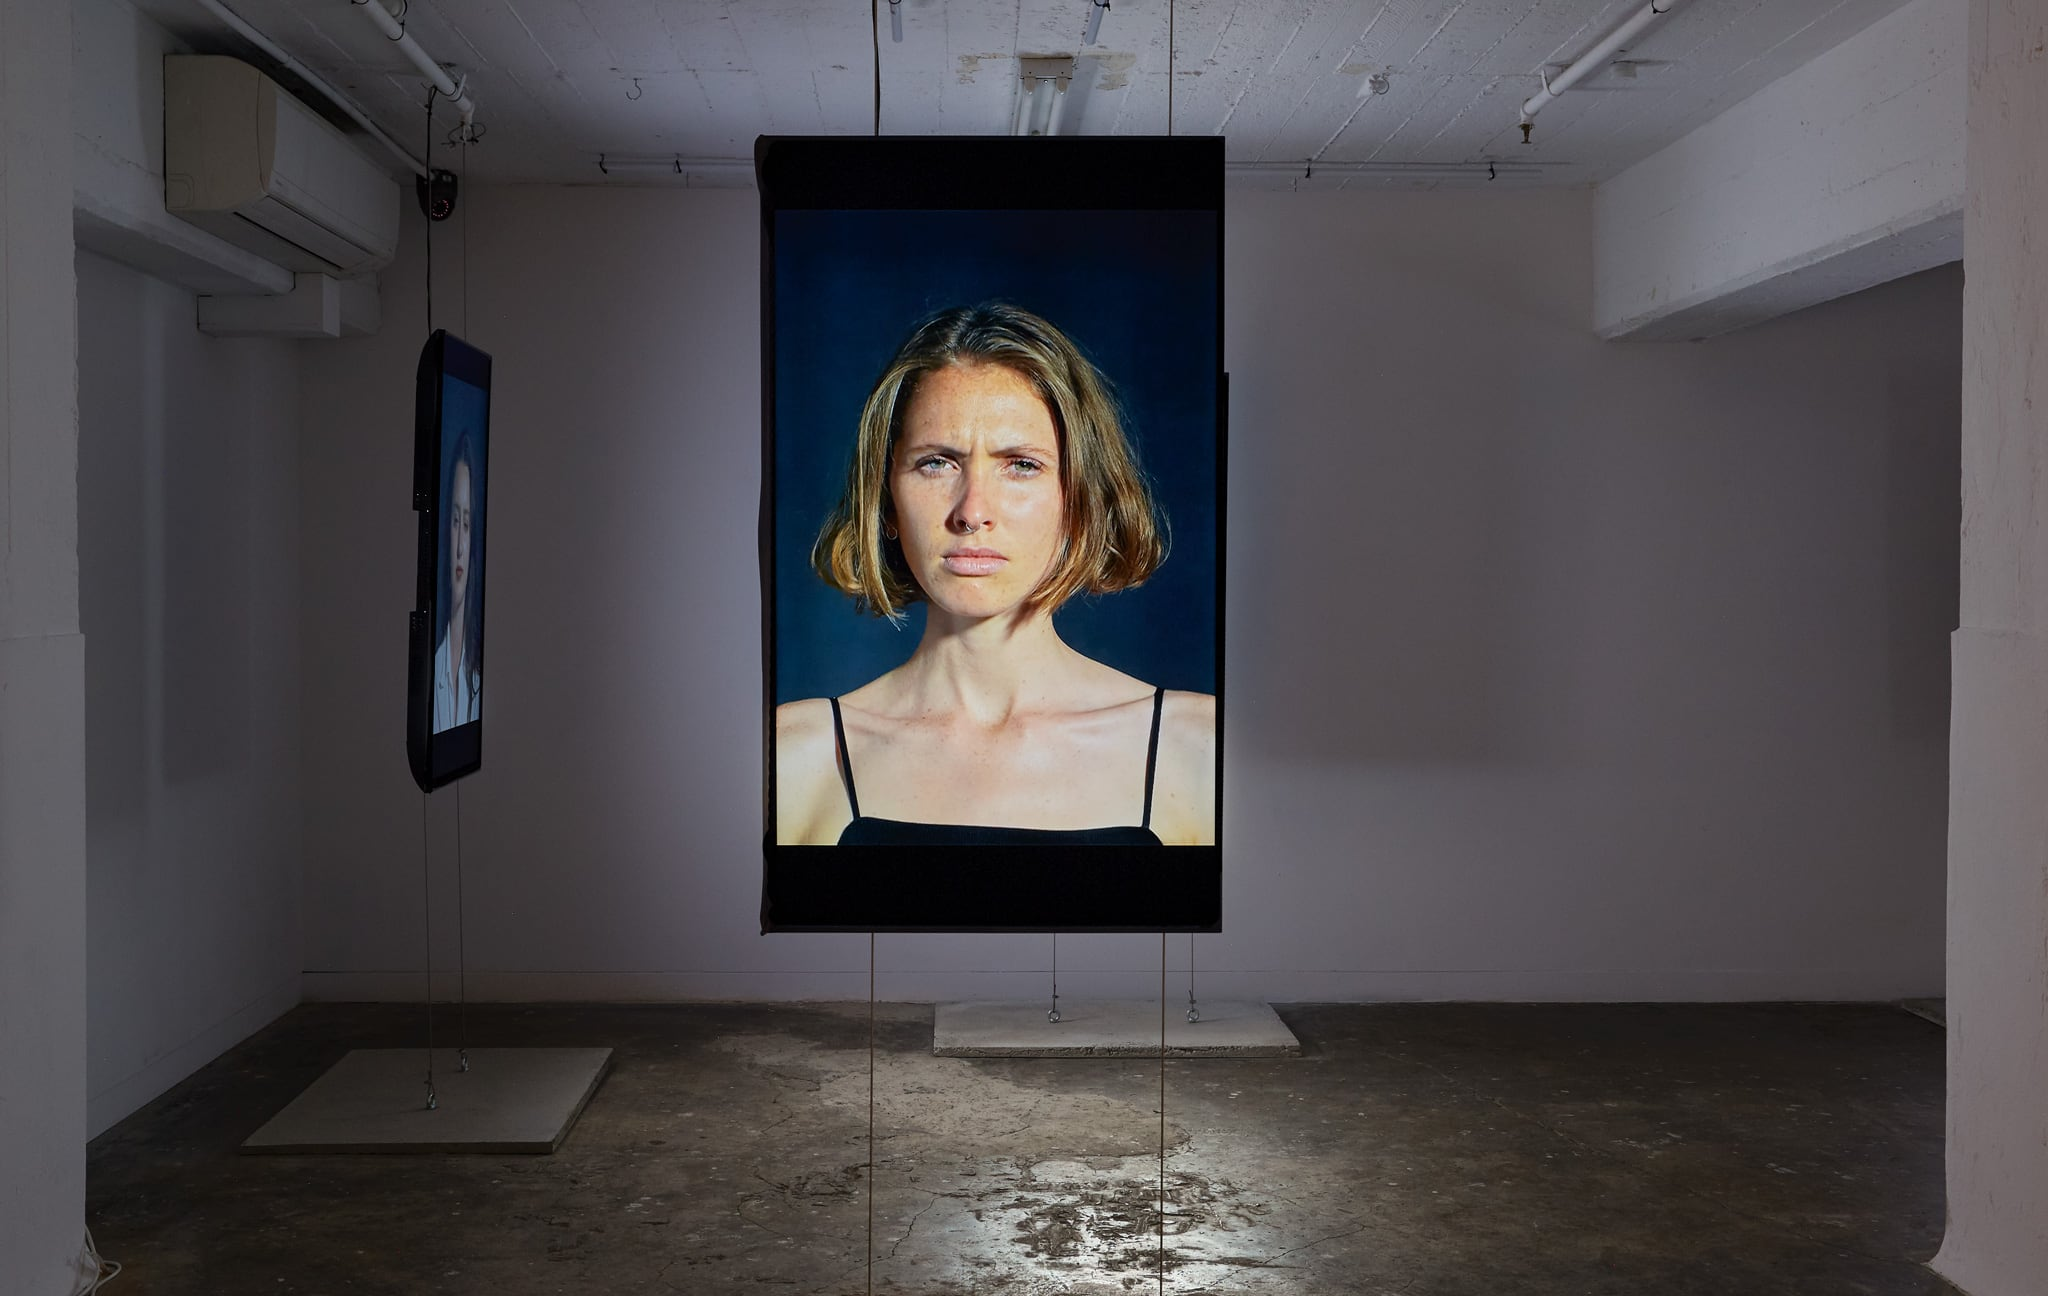 <p><i>Flash Portraits</i>, 2018, 5 channel installation, vertically orientated LCD screens, 1200 x 700mm, Installation View, DownUnder Gallery 2018</p>